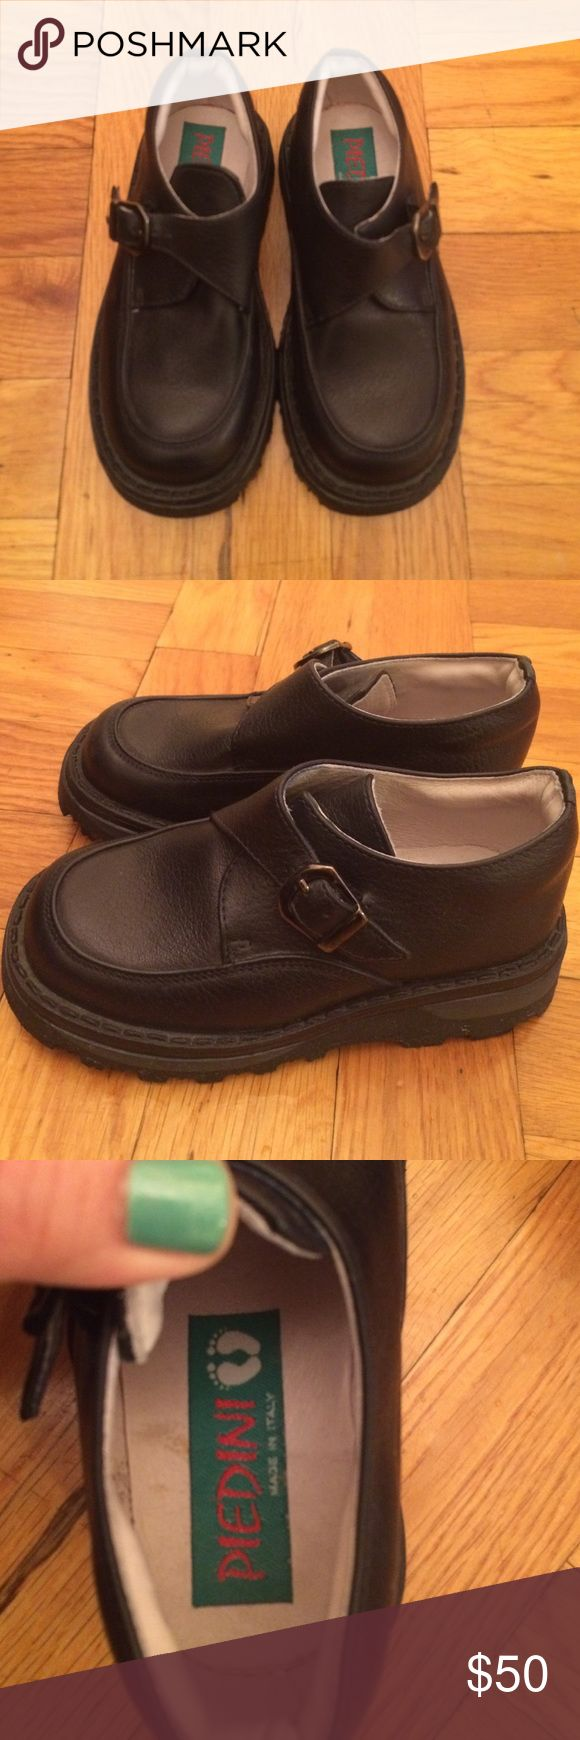 Piedini little boys dress shoes Practicaly new worn only once , dressy very dark navy look like black; made in Italy Piedini Shoes Dress Shoes